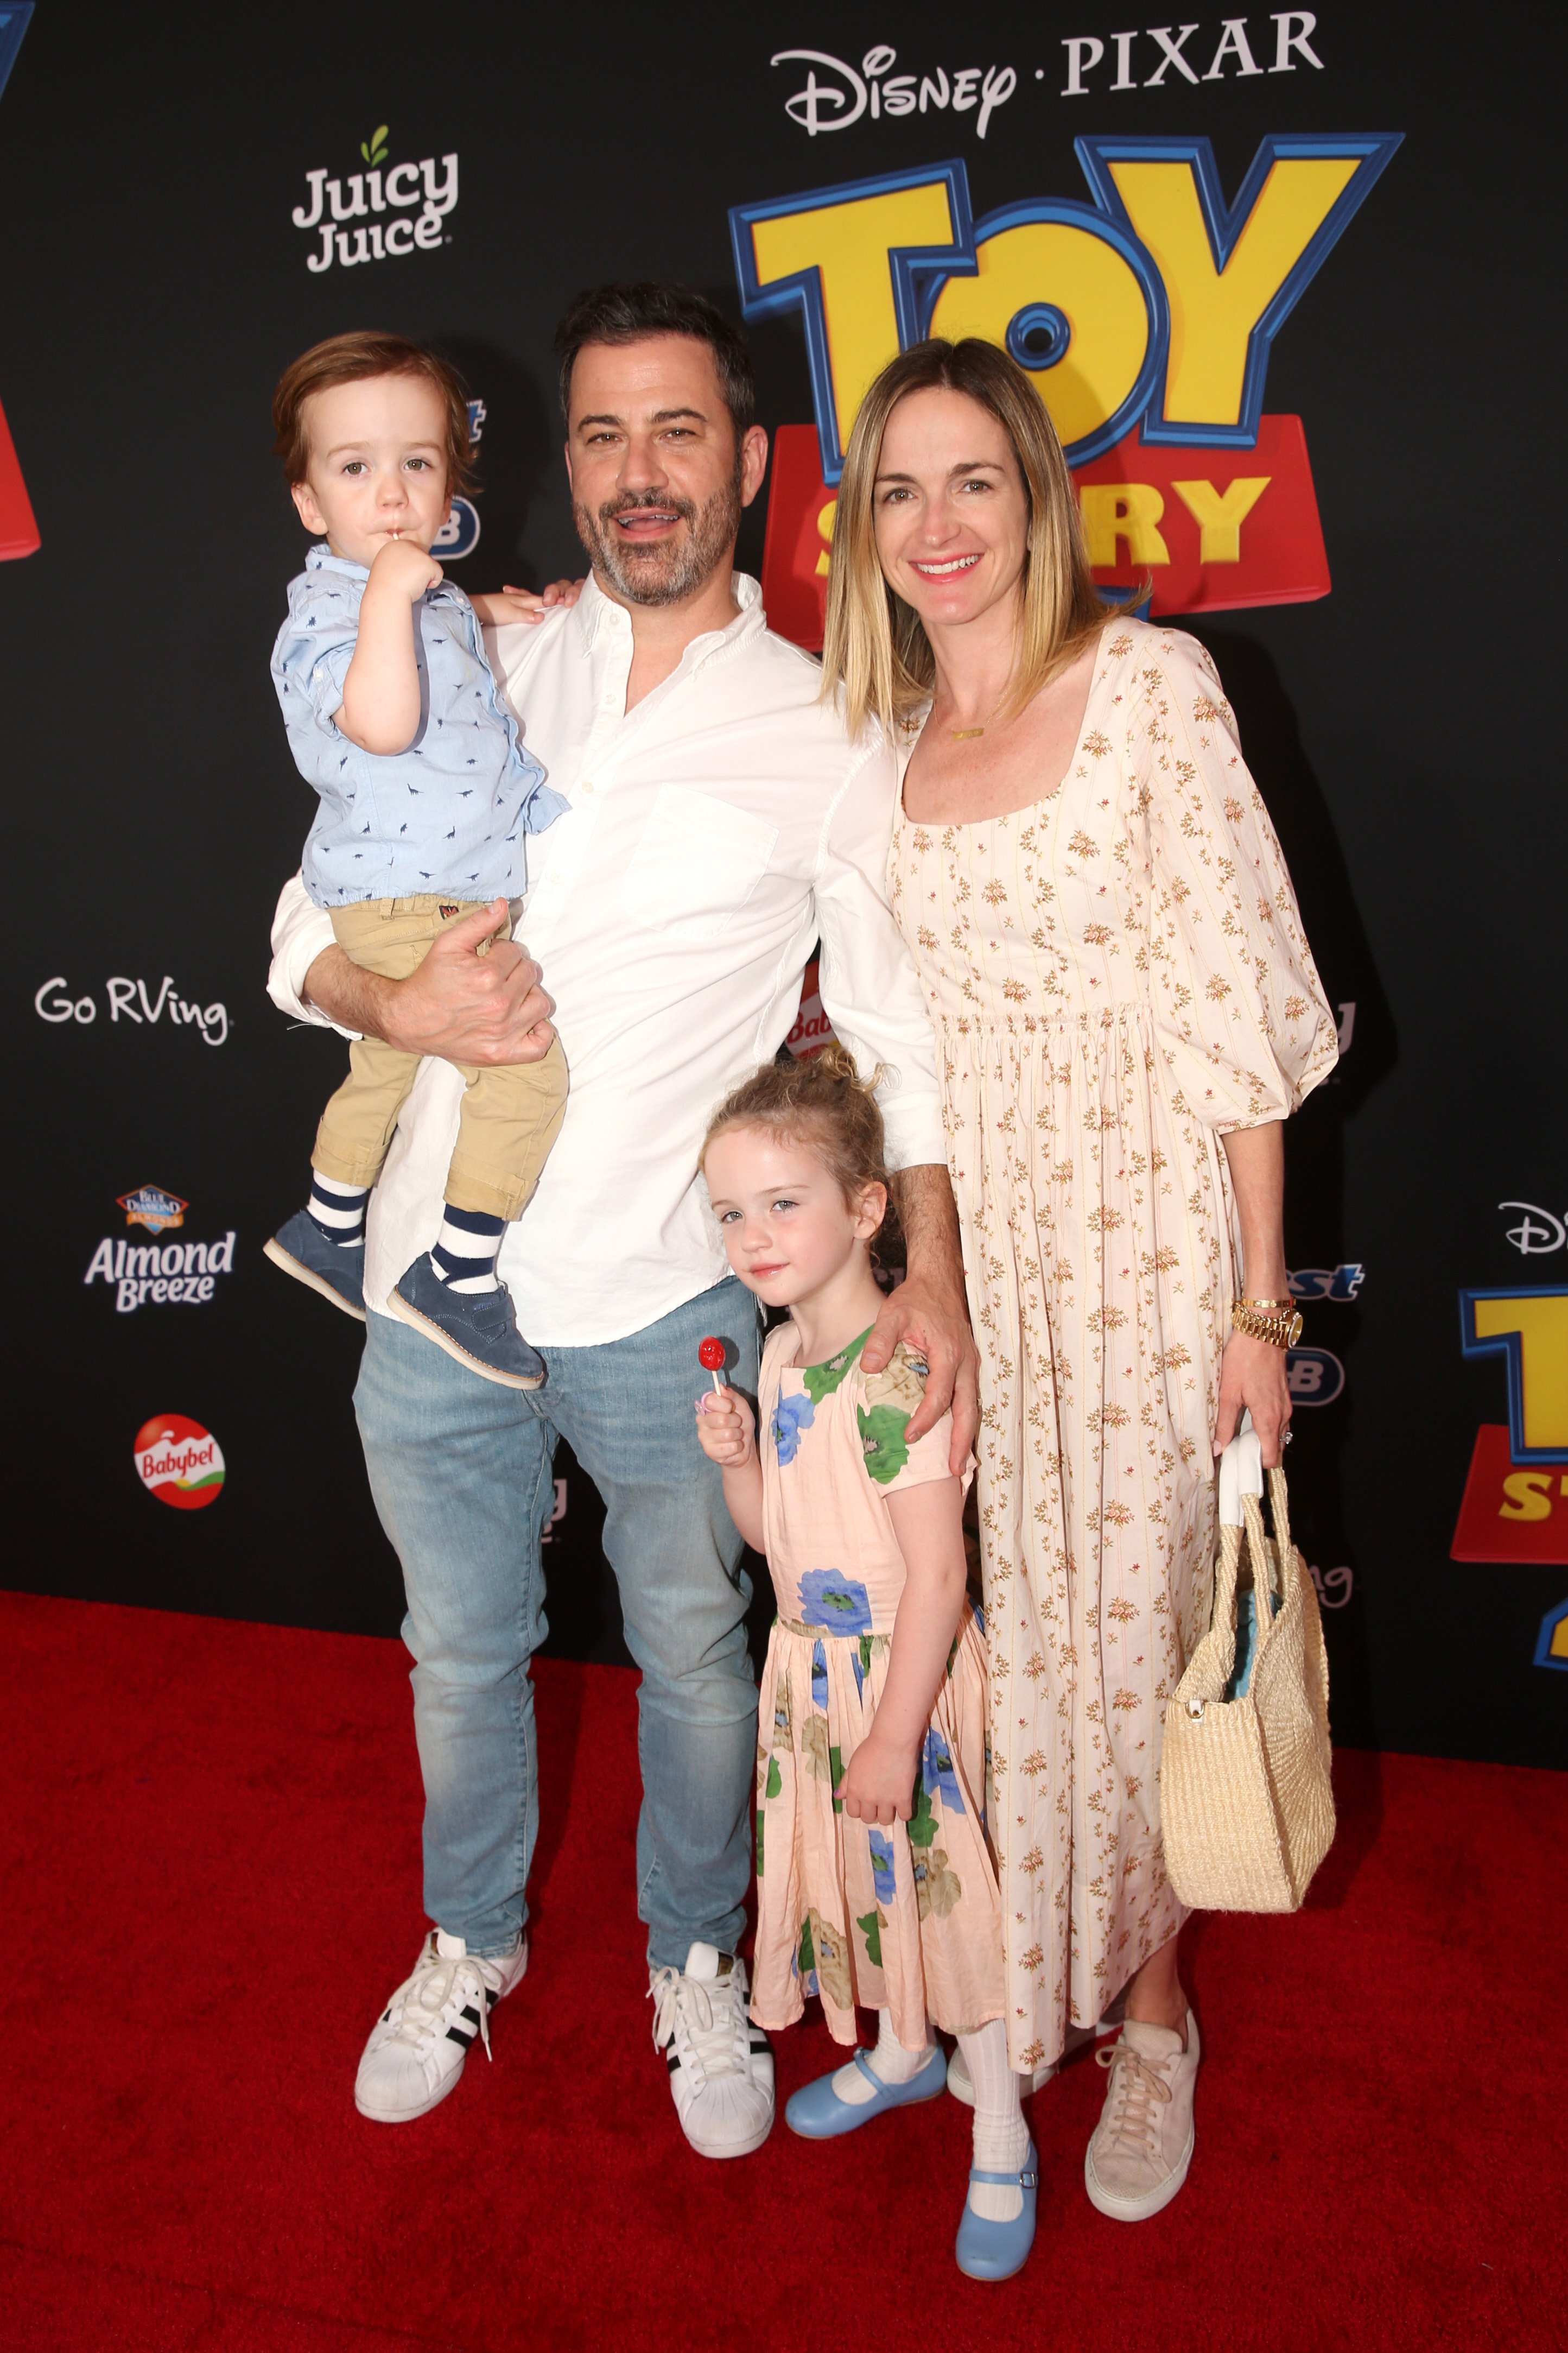 Jimmy Kimmel & Family on 'Toy Story 4' Premiere Red Carpet | Photo: Getty Images